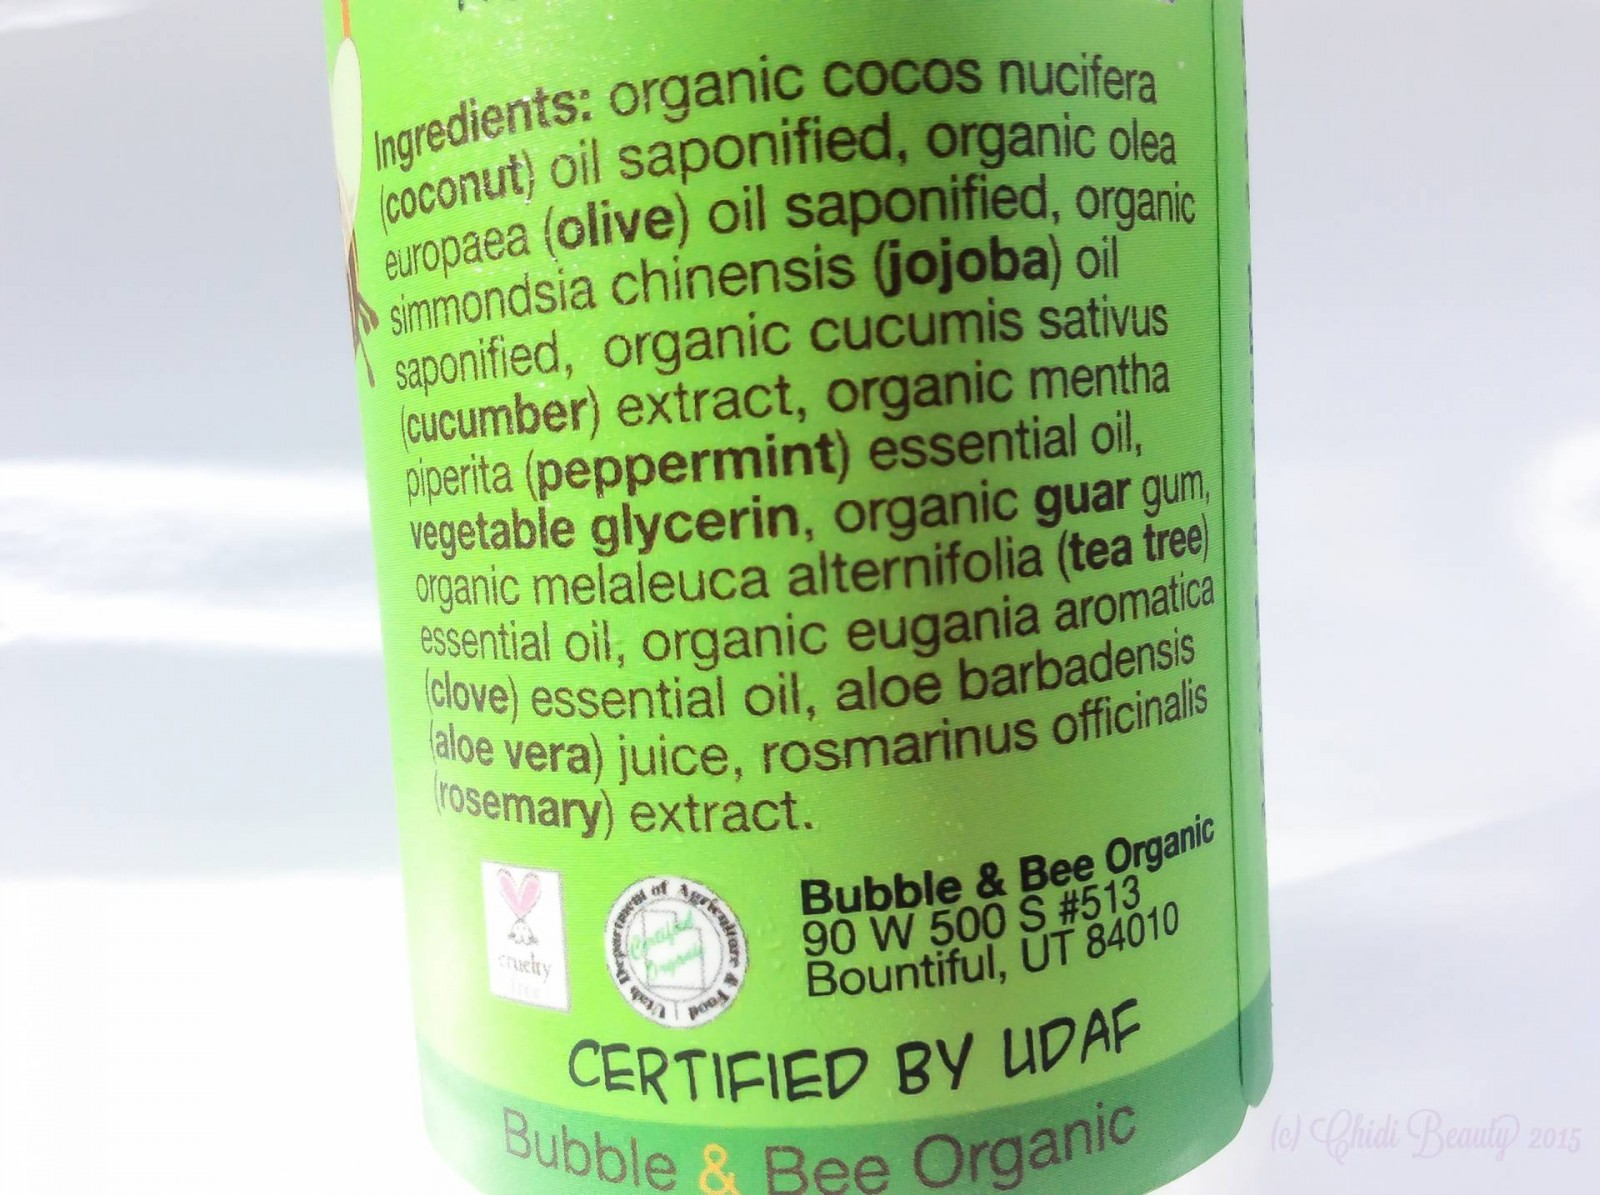 Bubble & Bee Facial Cleanser in Cool Cucumber Ingredients